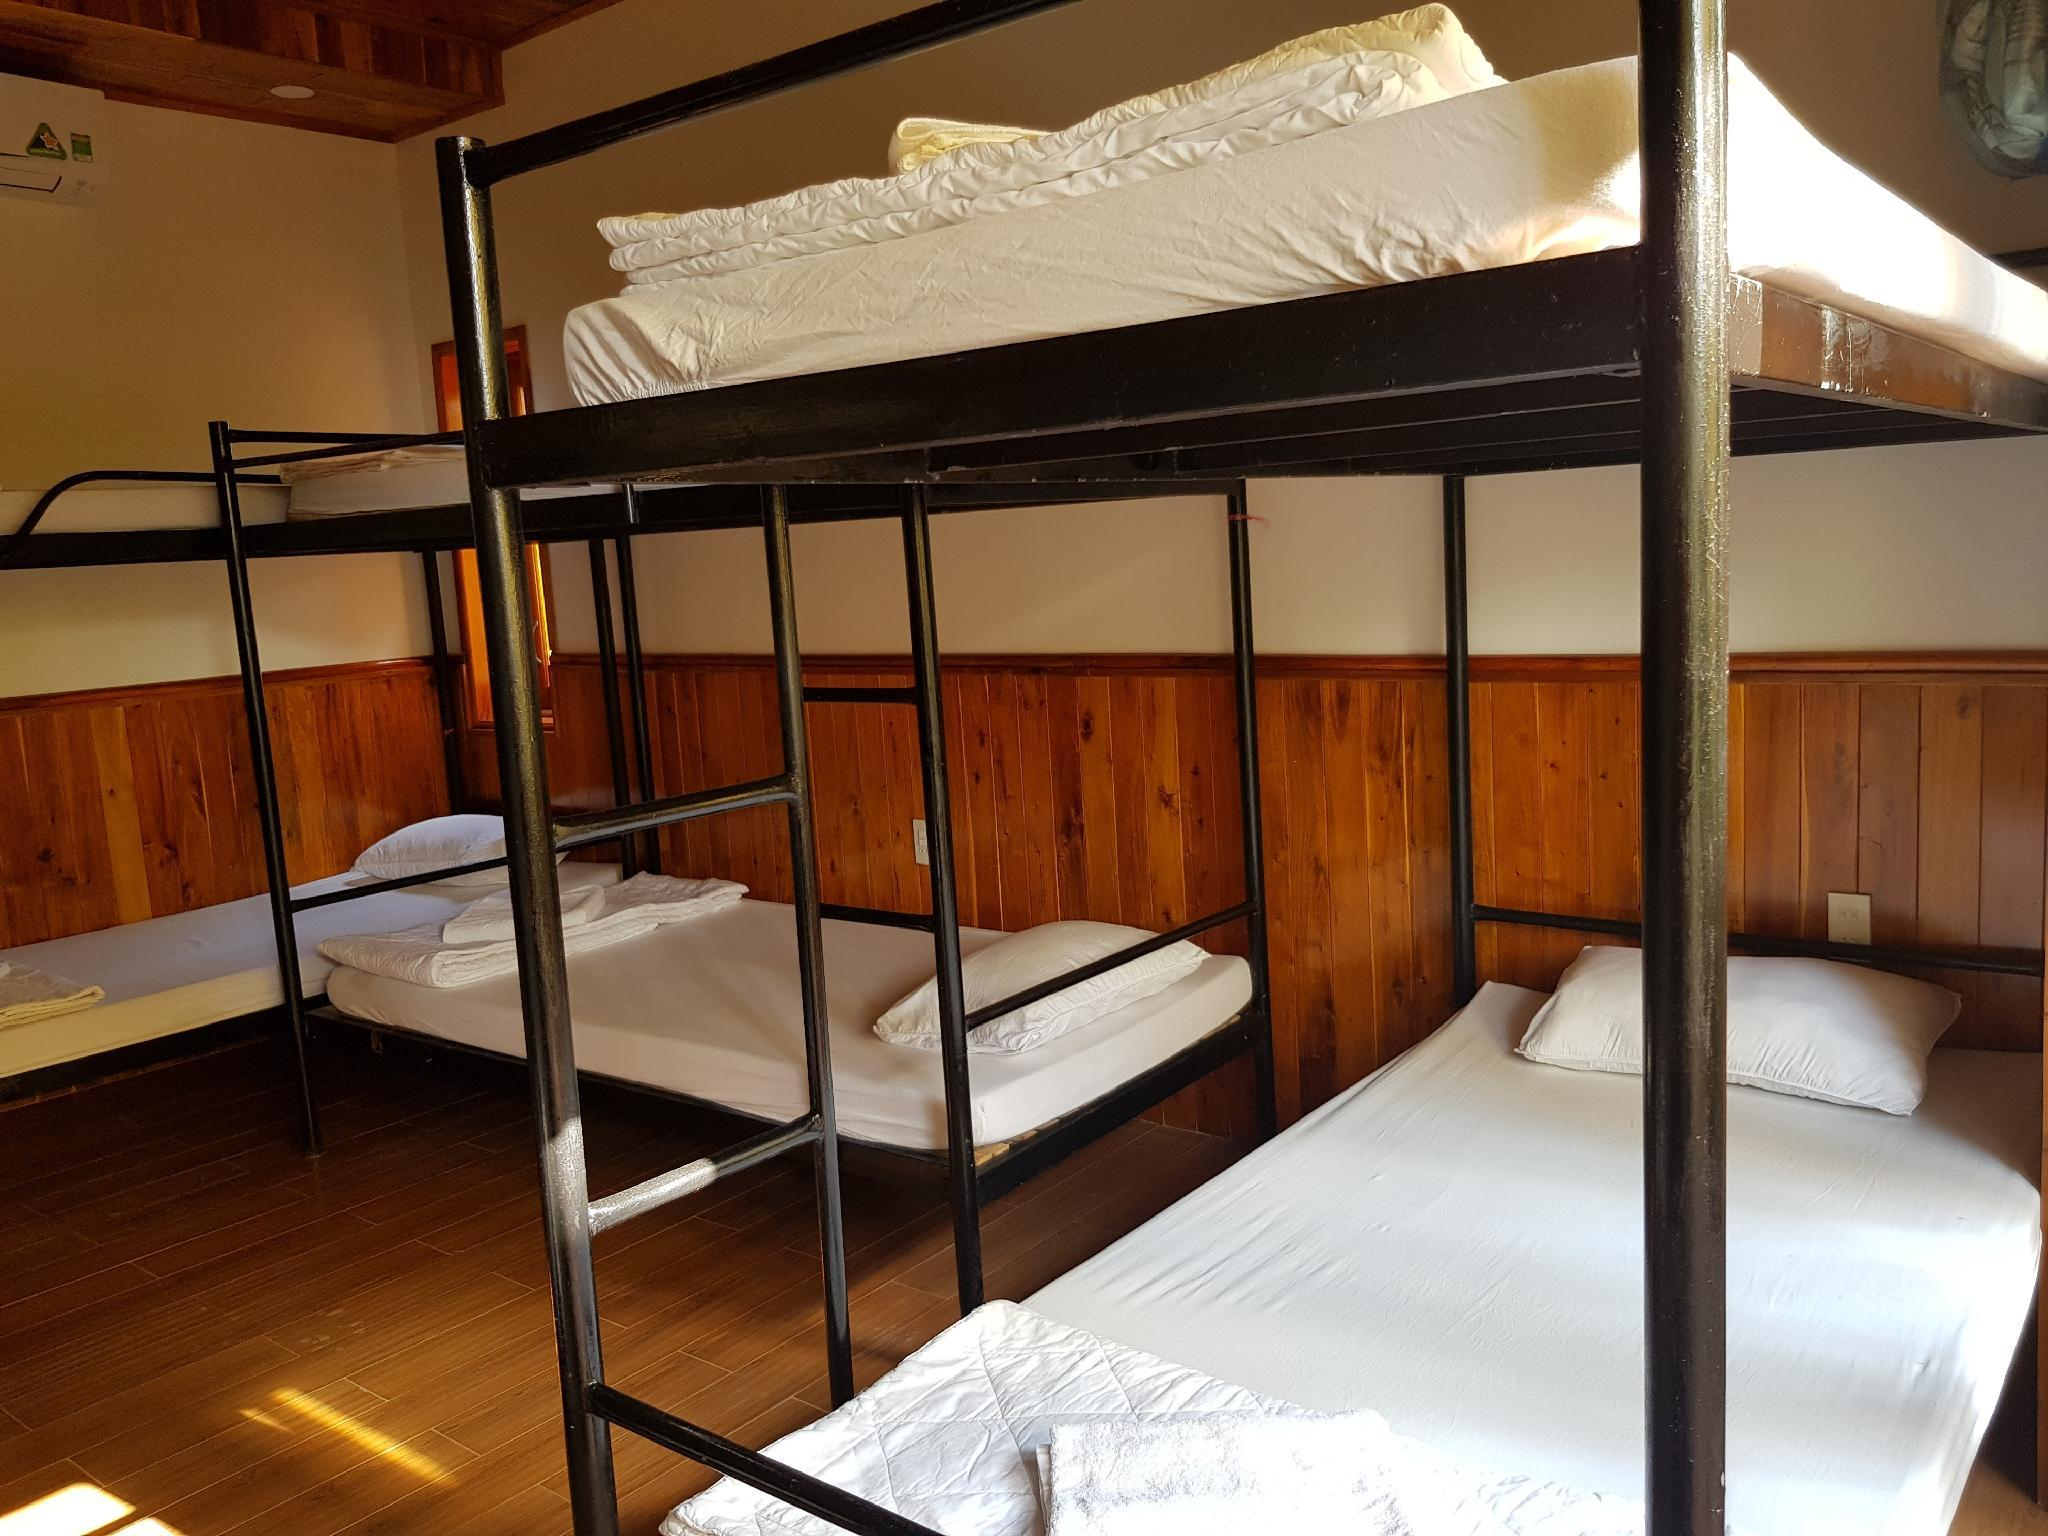 1 Bed in 10-Bed Dormitory